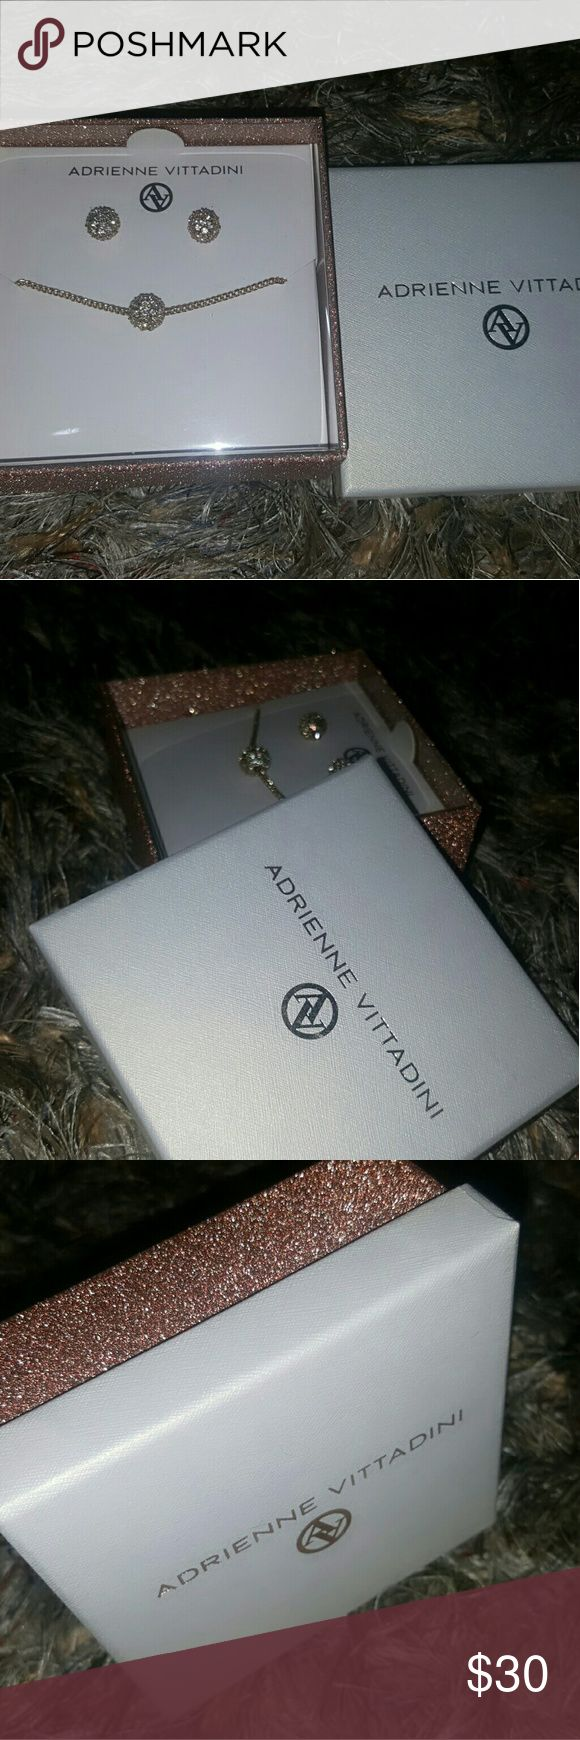 Adrienne Vittadini Necklace And Earrings set Brand new Adrienne Vittadini Necklace And Earrings set, unused, undamaged and in its original retail package. Please see pictures for details ?????? Adrienne Vittadini Jewelry